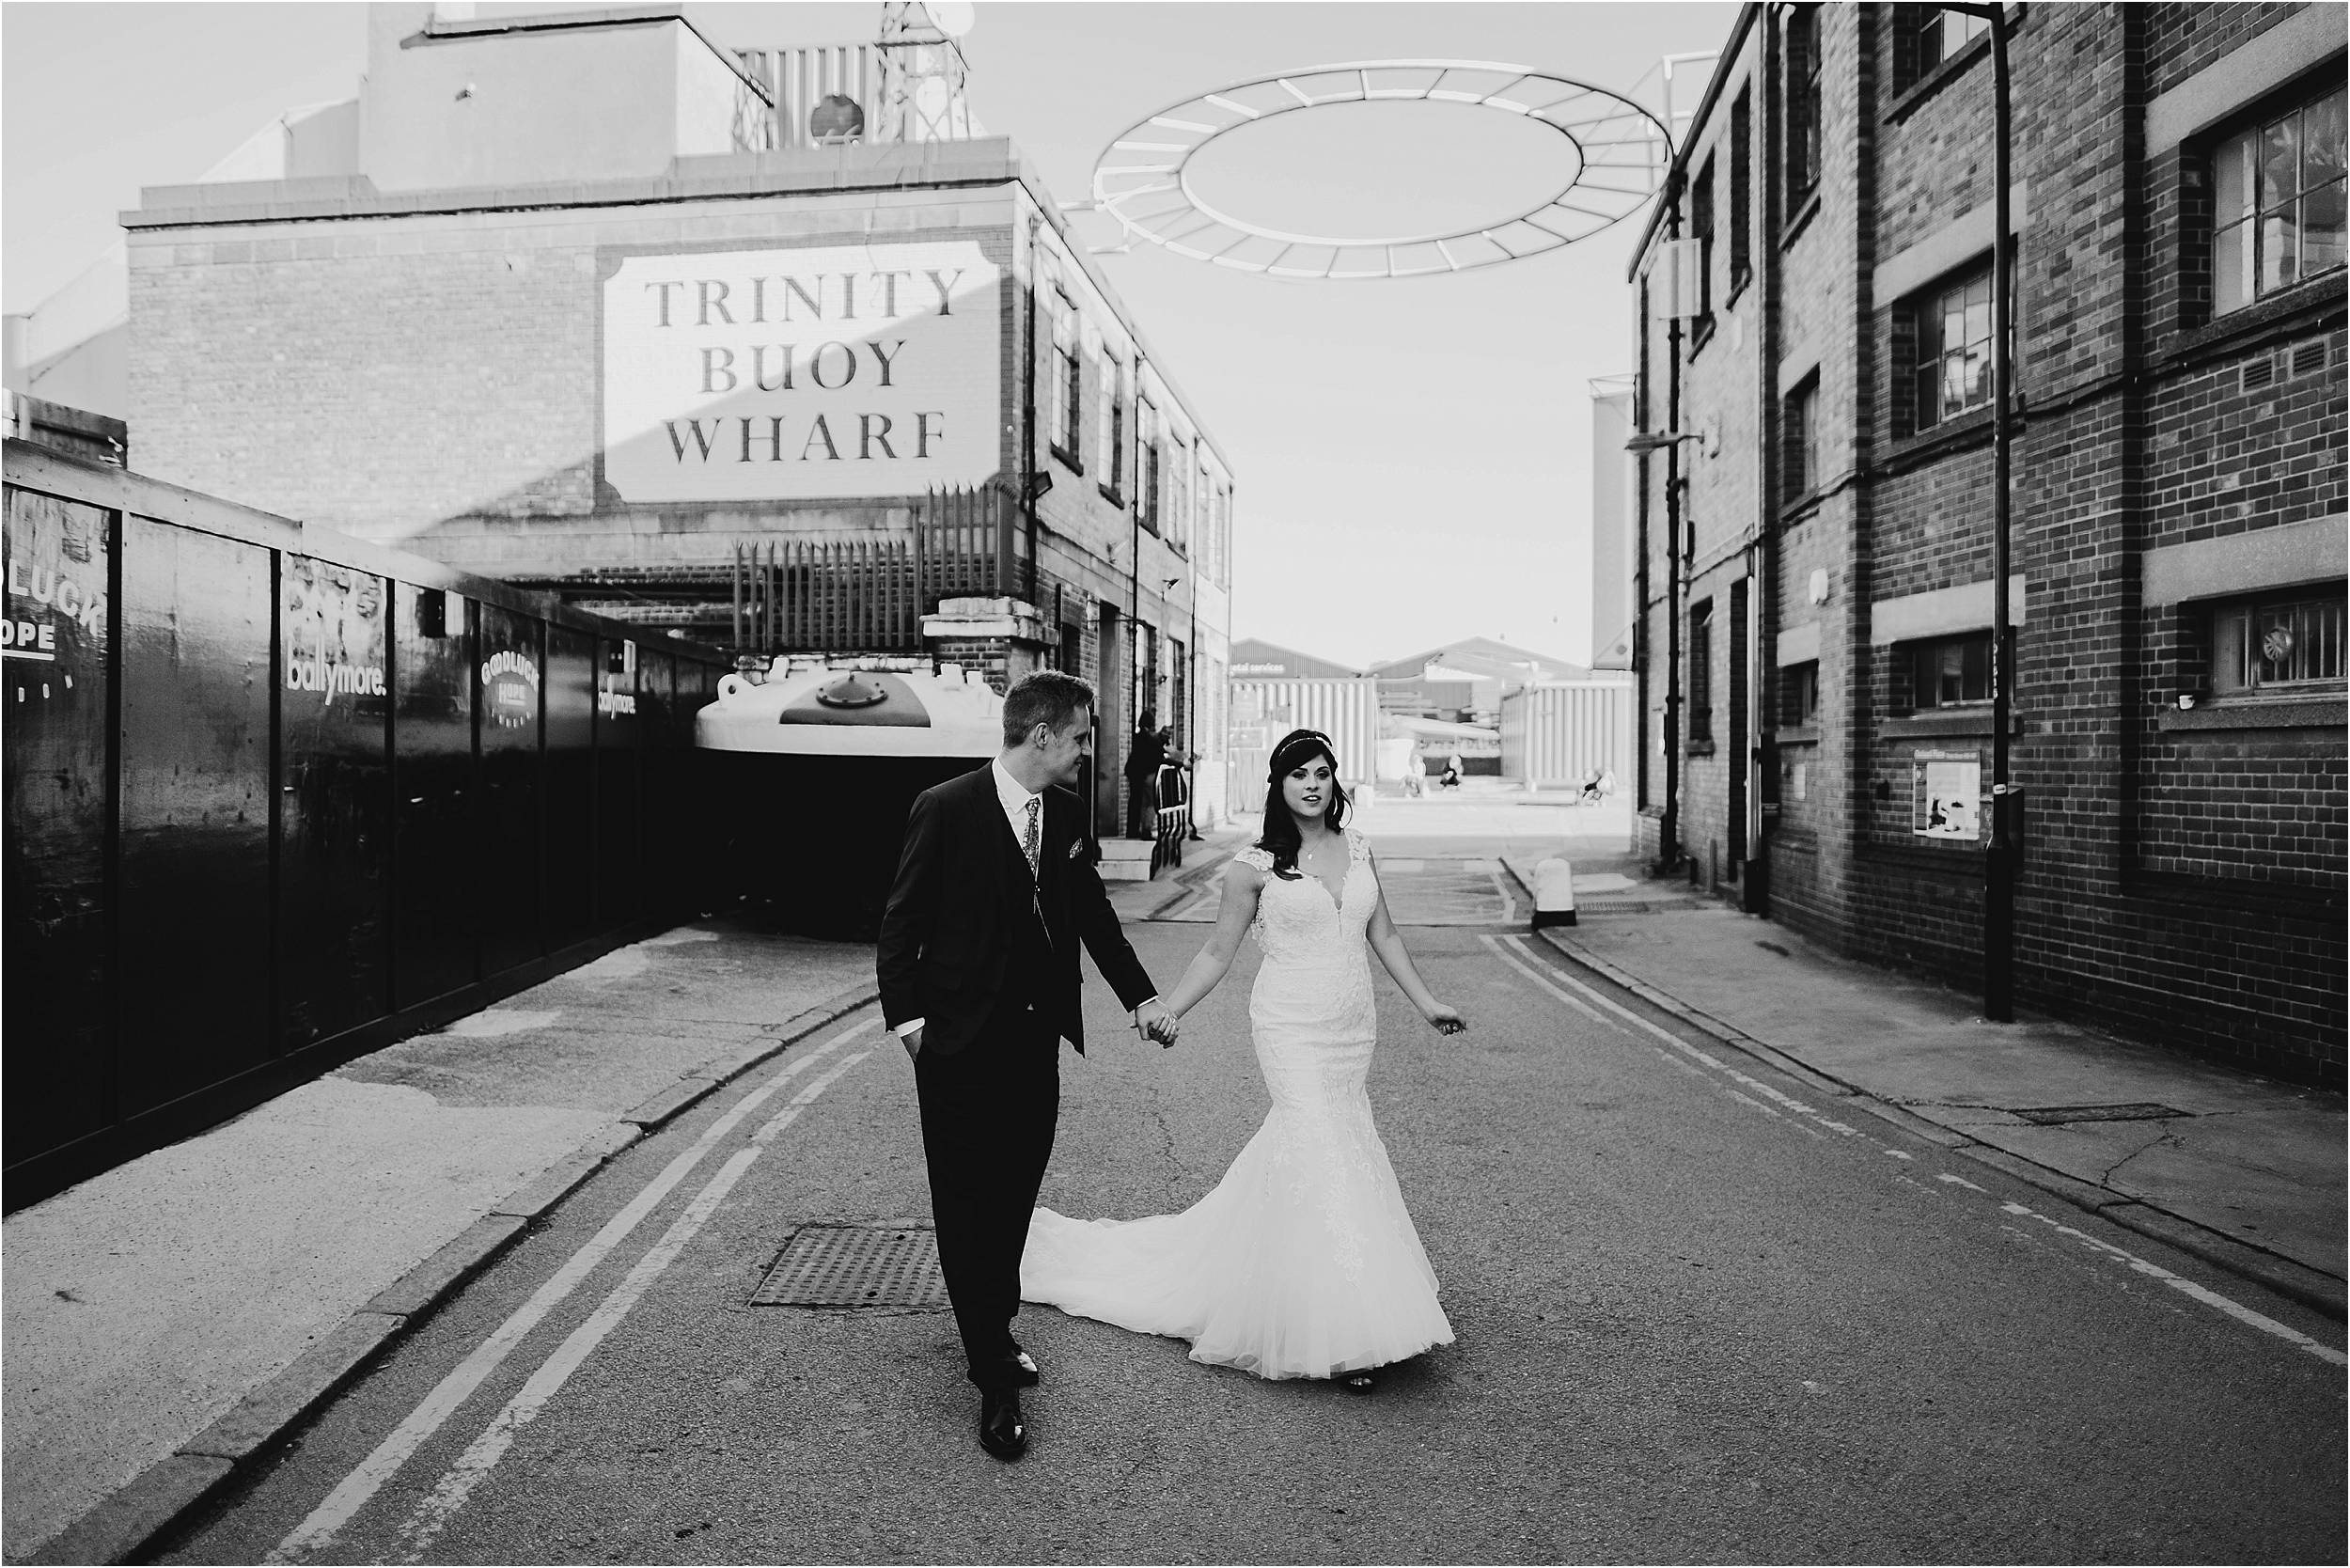 Trinity Buoy Wharf Wedding Photography_0080.jpg